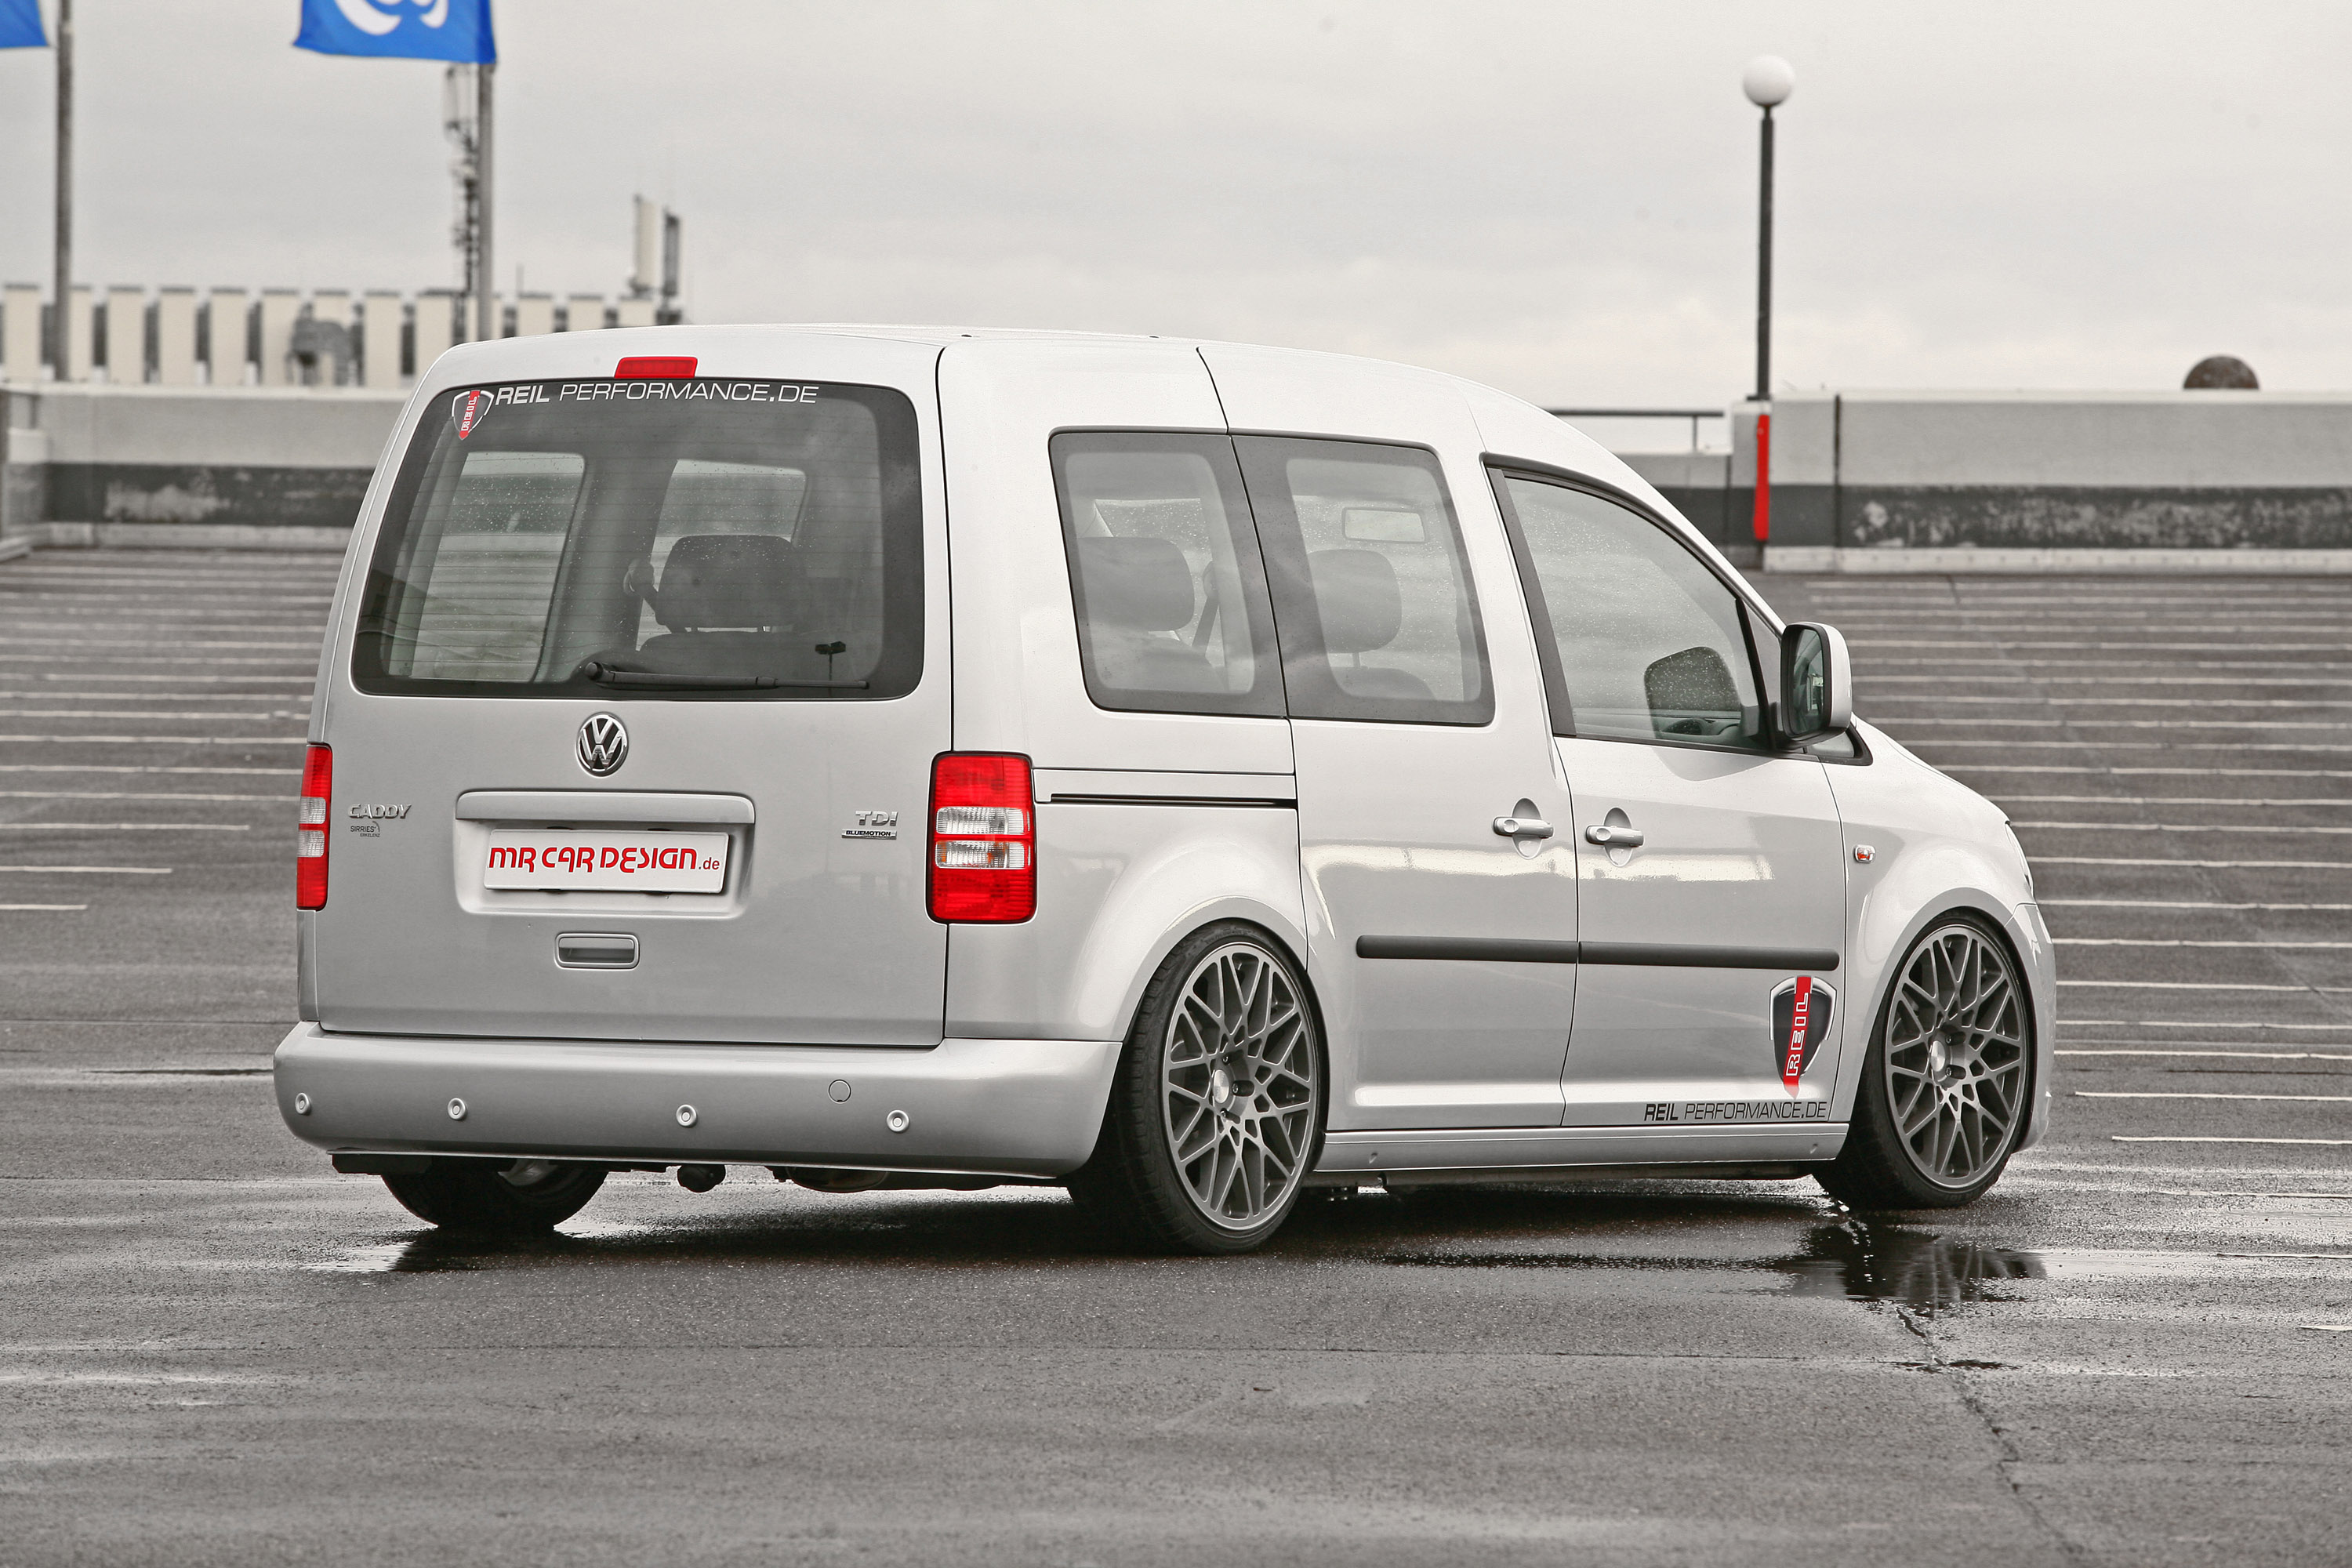 Mr Car Design Volkswagen Caddy Picture 63556